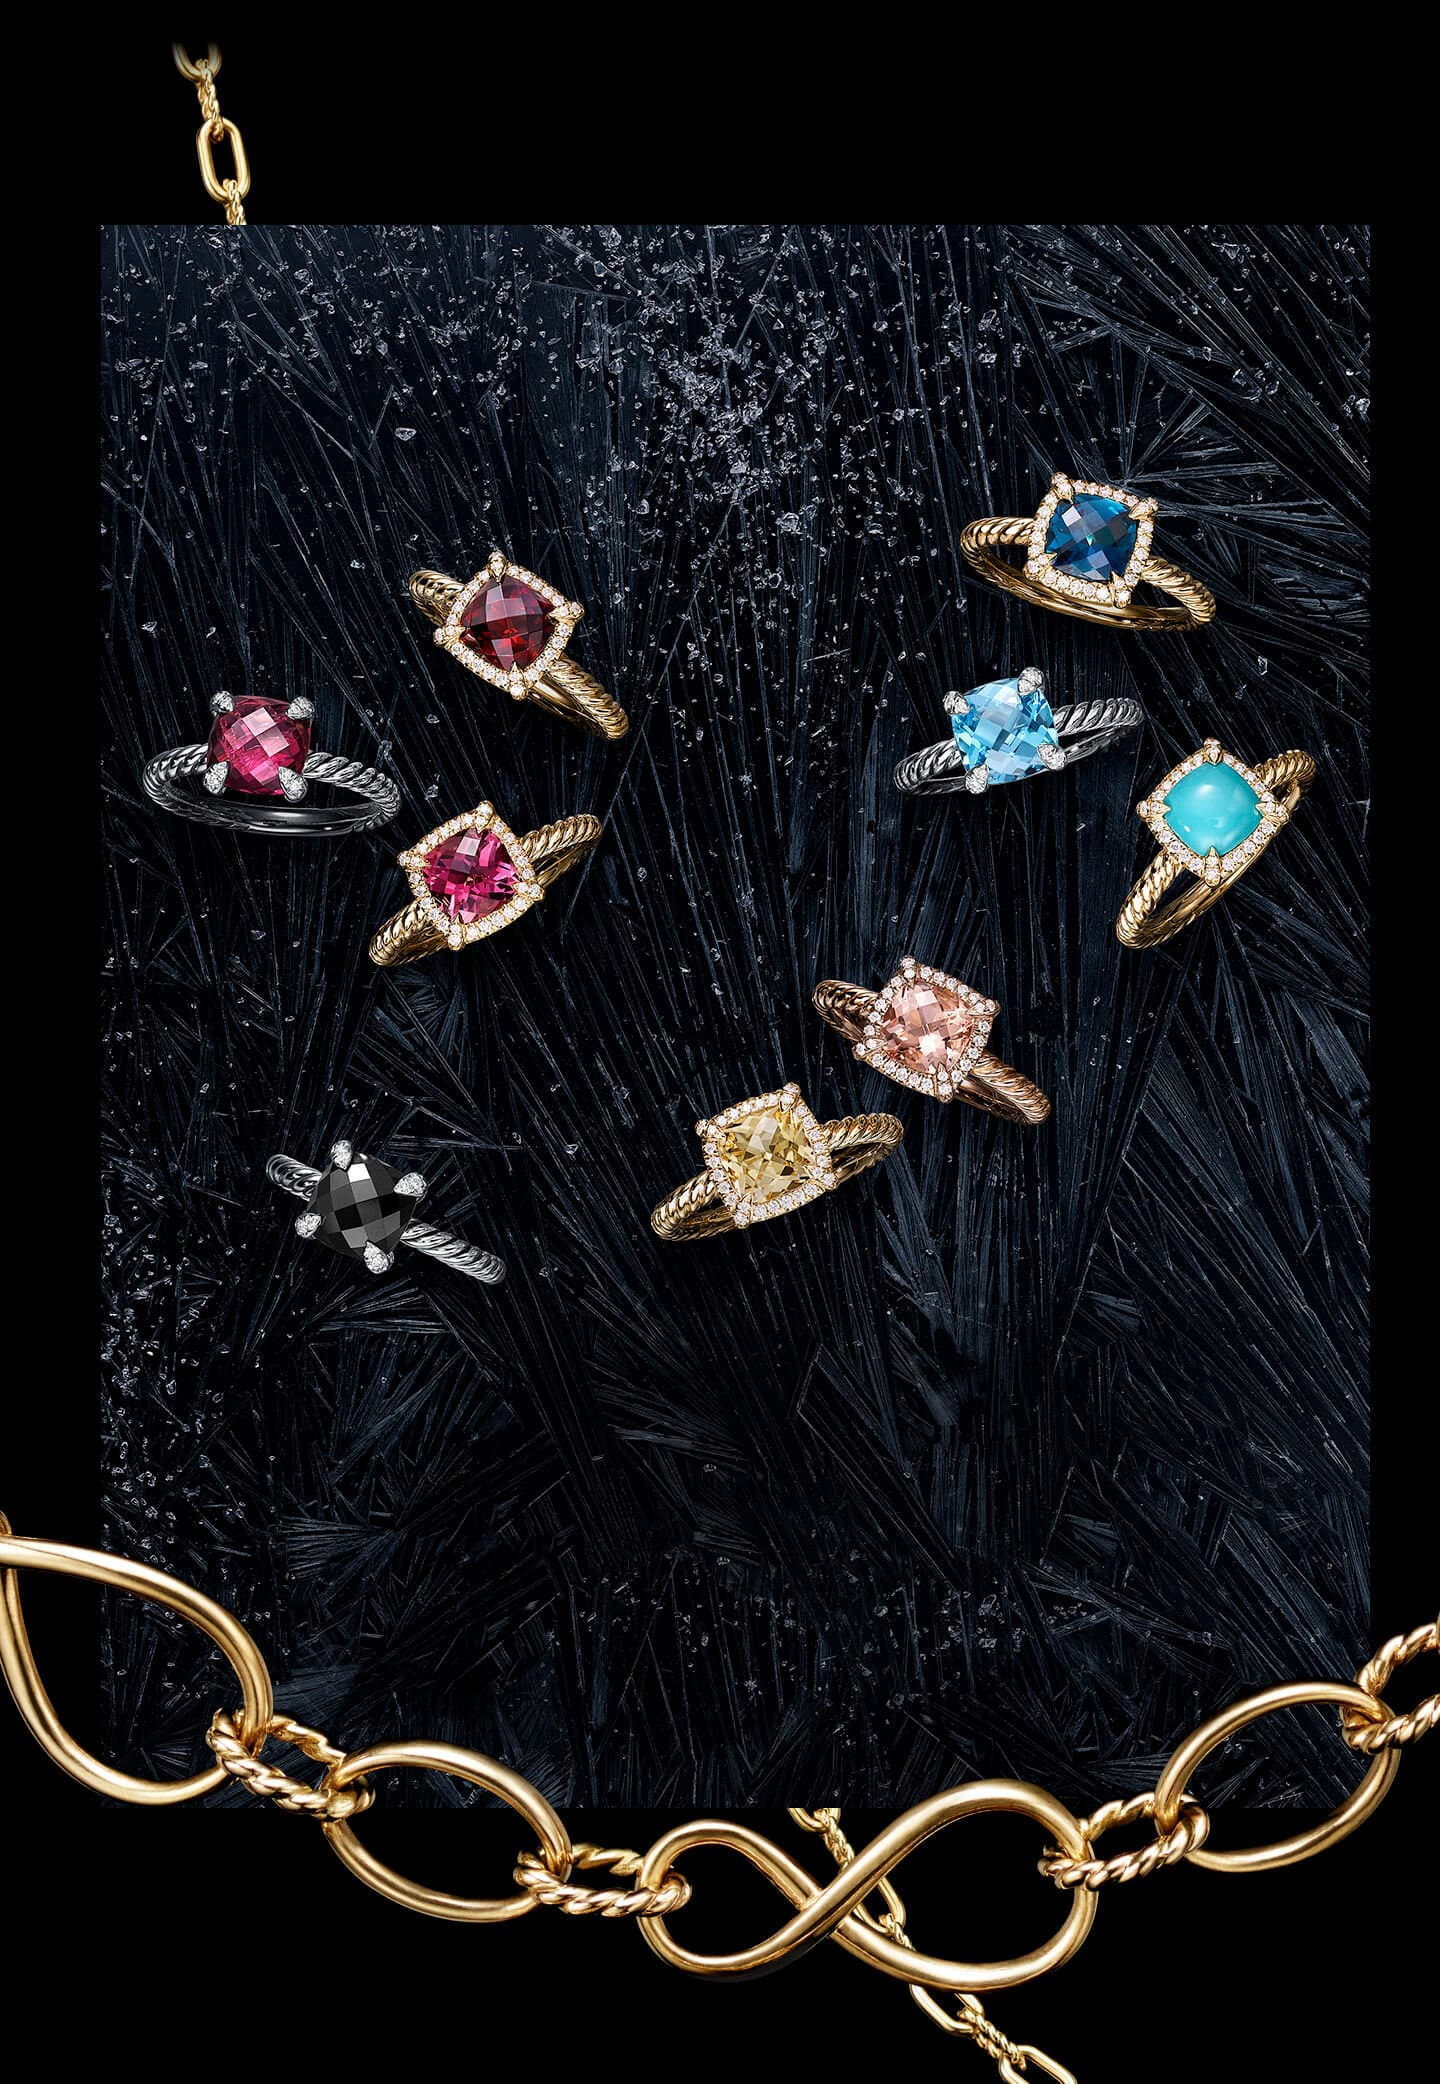 An overhead shot shows six David Yurman Châtelaine rings placed on top of a black frozen surface with large ice crystals. The women's jewelry is crafted from 18K yellow gold or sterling silver with garnet, blue topaz or chrysoprase center stones and pavé white diamond–encrusted prongs or bezels.